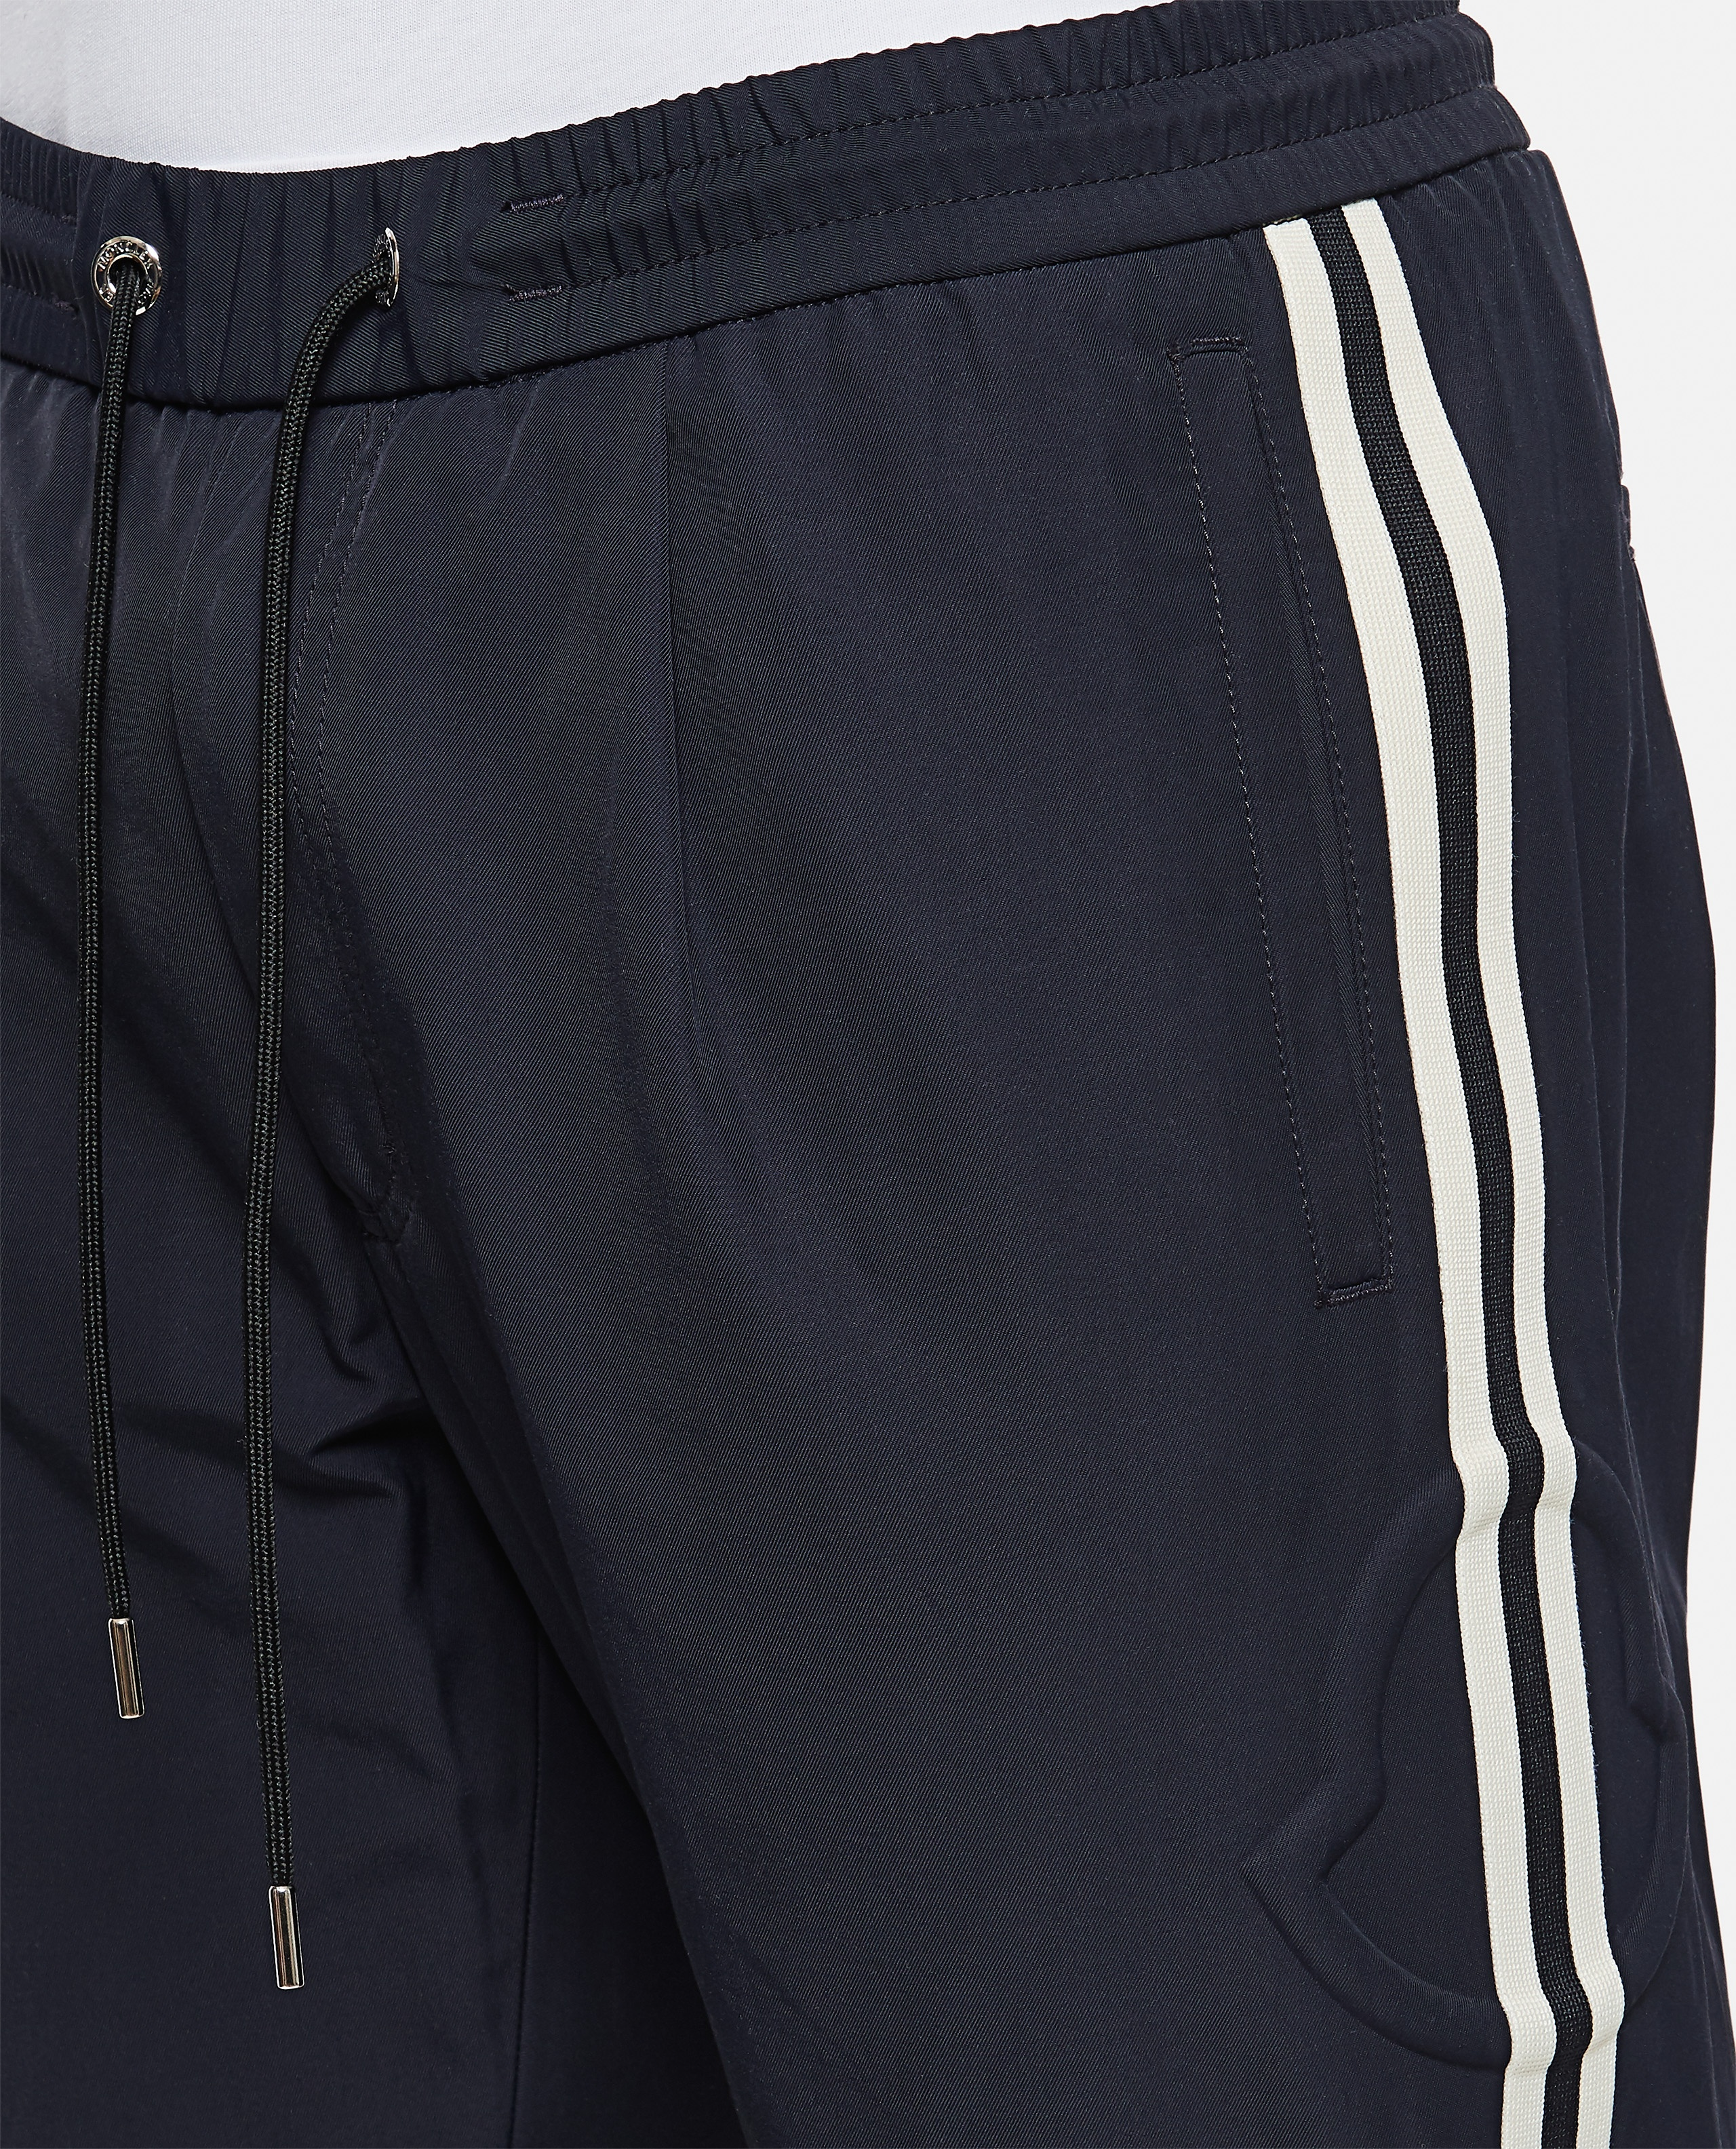 Jogging trousers with side band Men Moncler 000308560045254 4